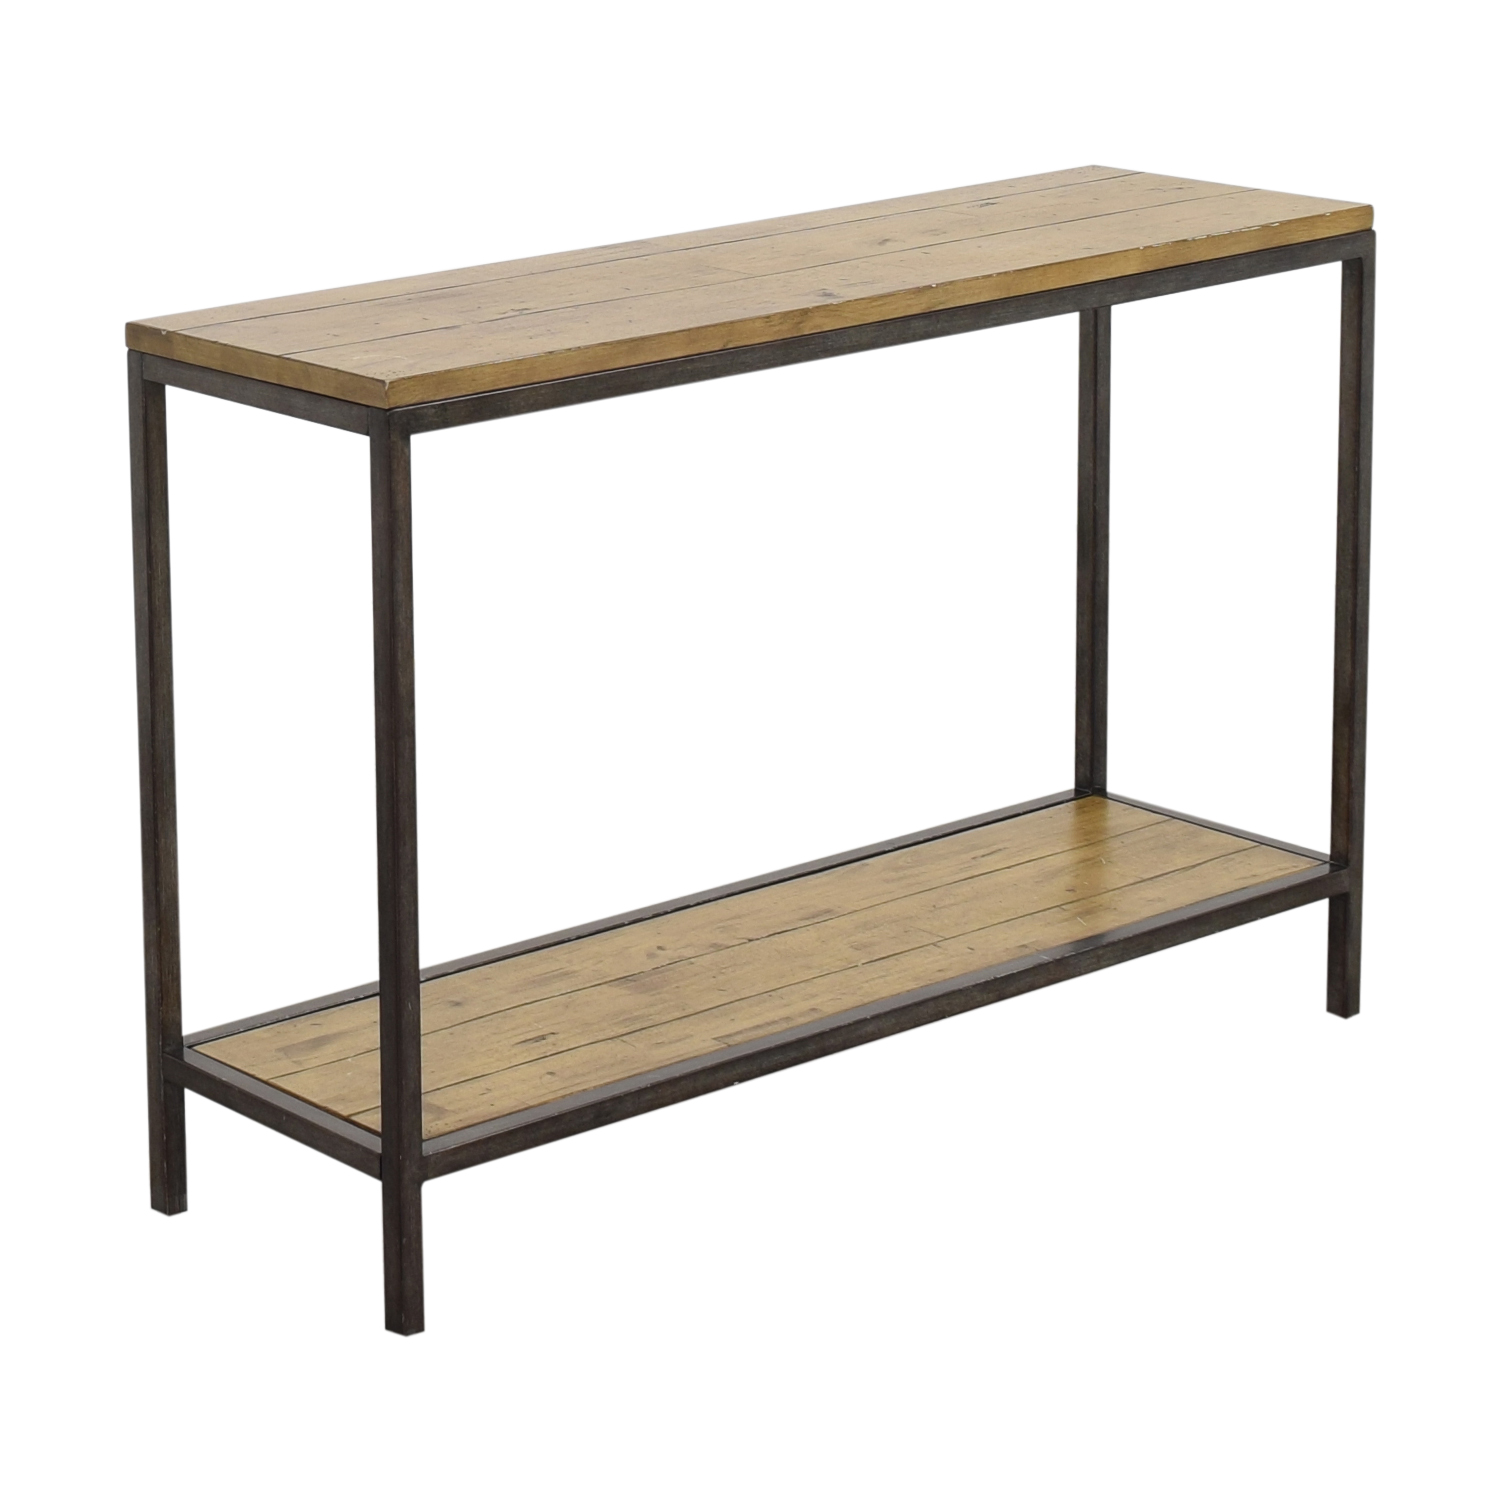 Ballard Designs Ballard Designs Durham Console Table for sale